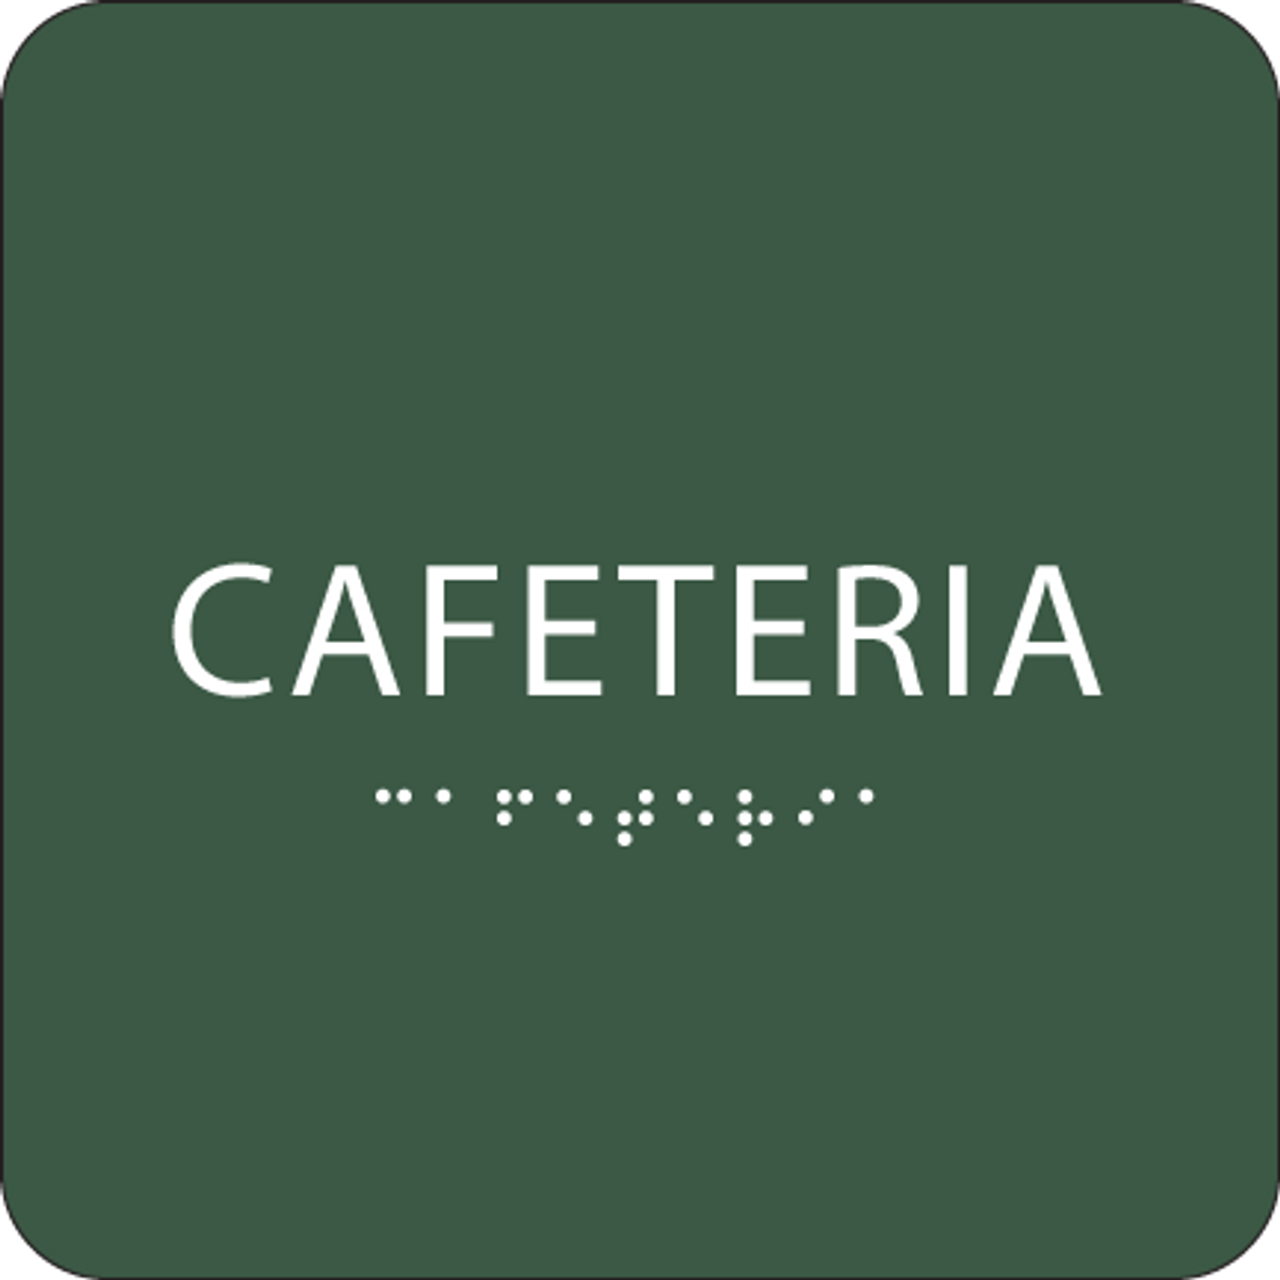 Green Cafeteria Braille Sign